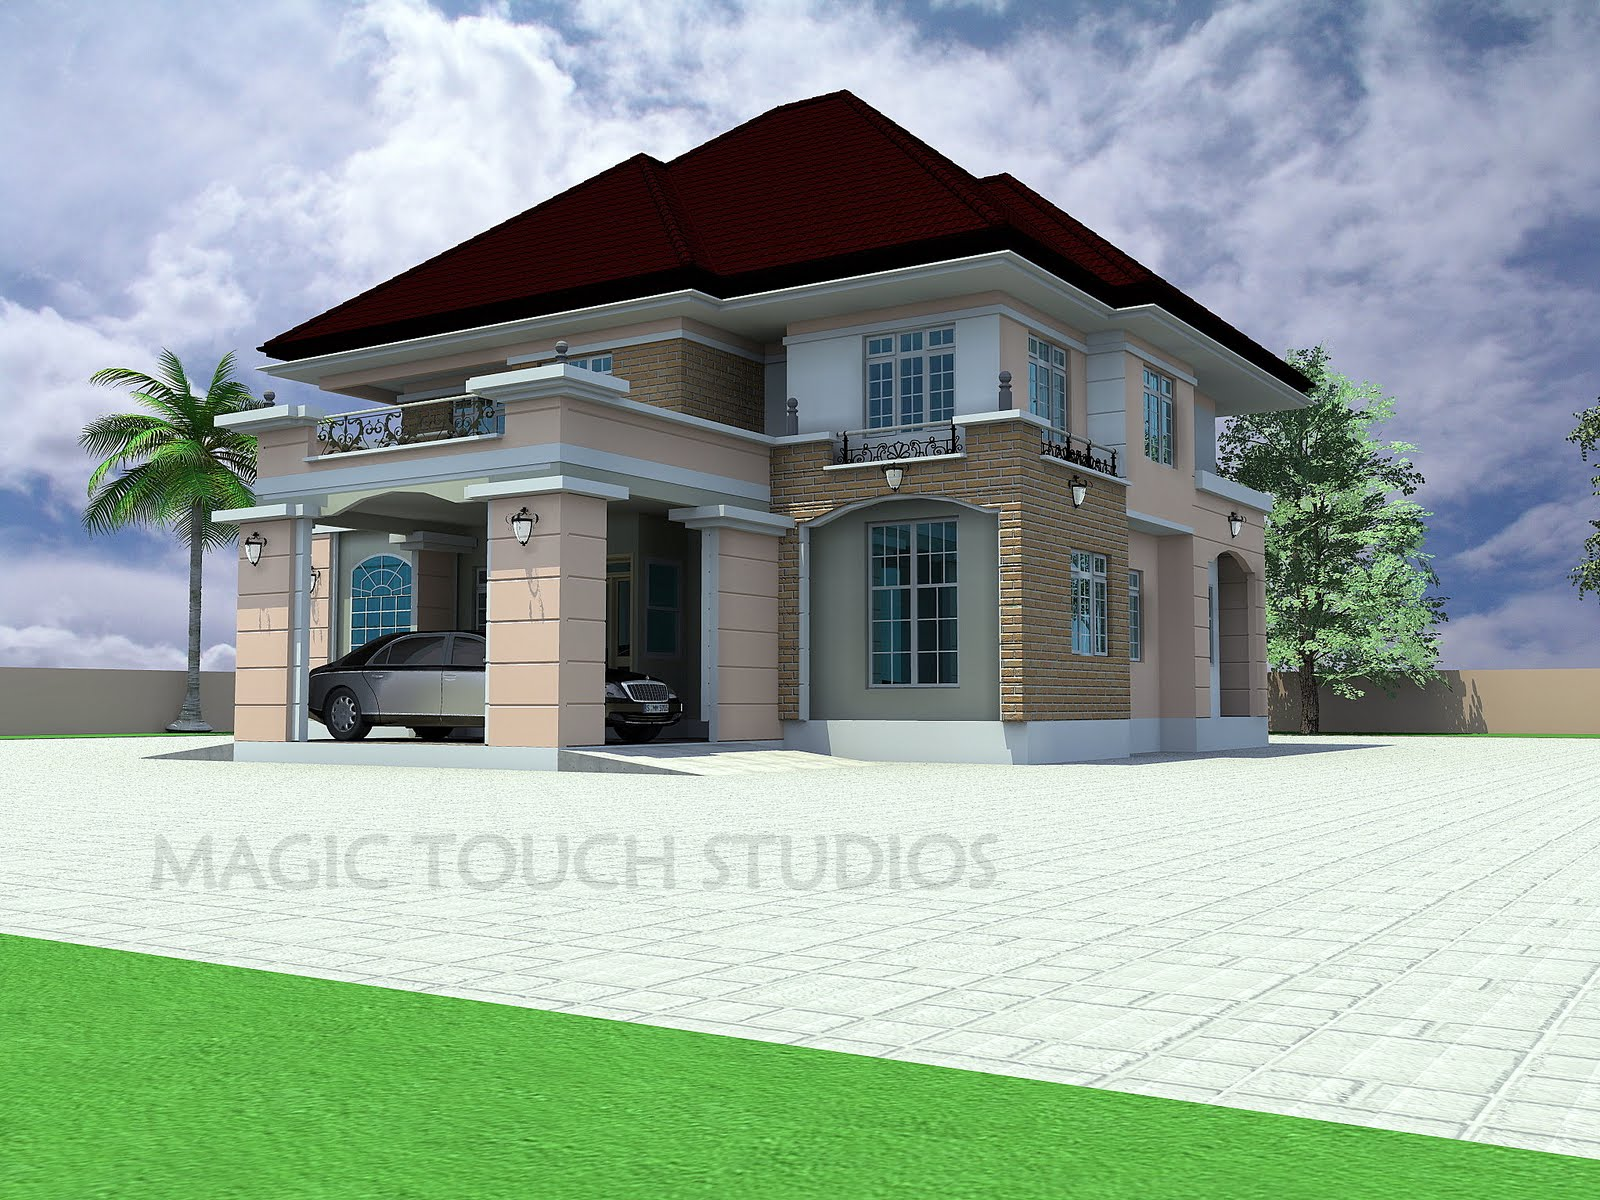 5 bedroom duplex residential homes and public designs New duplex designs